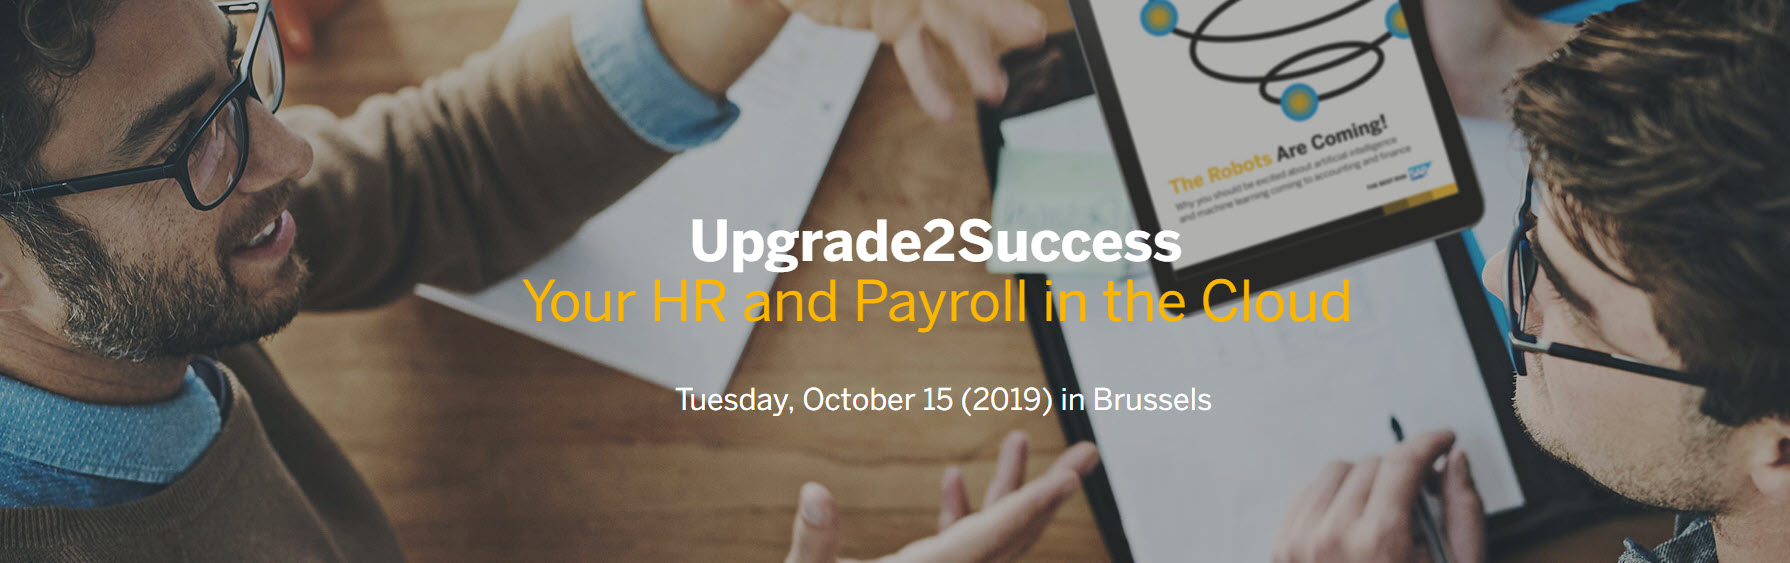 Upgrade2Success - Your HR and Payroll in the Cloud